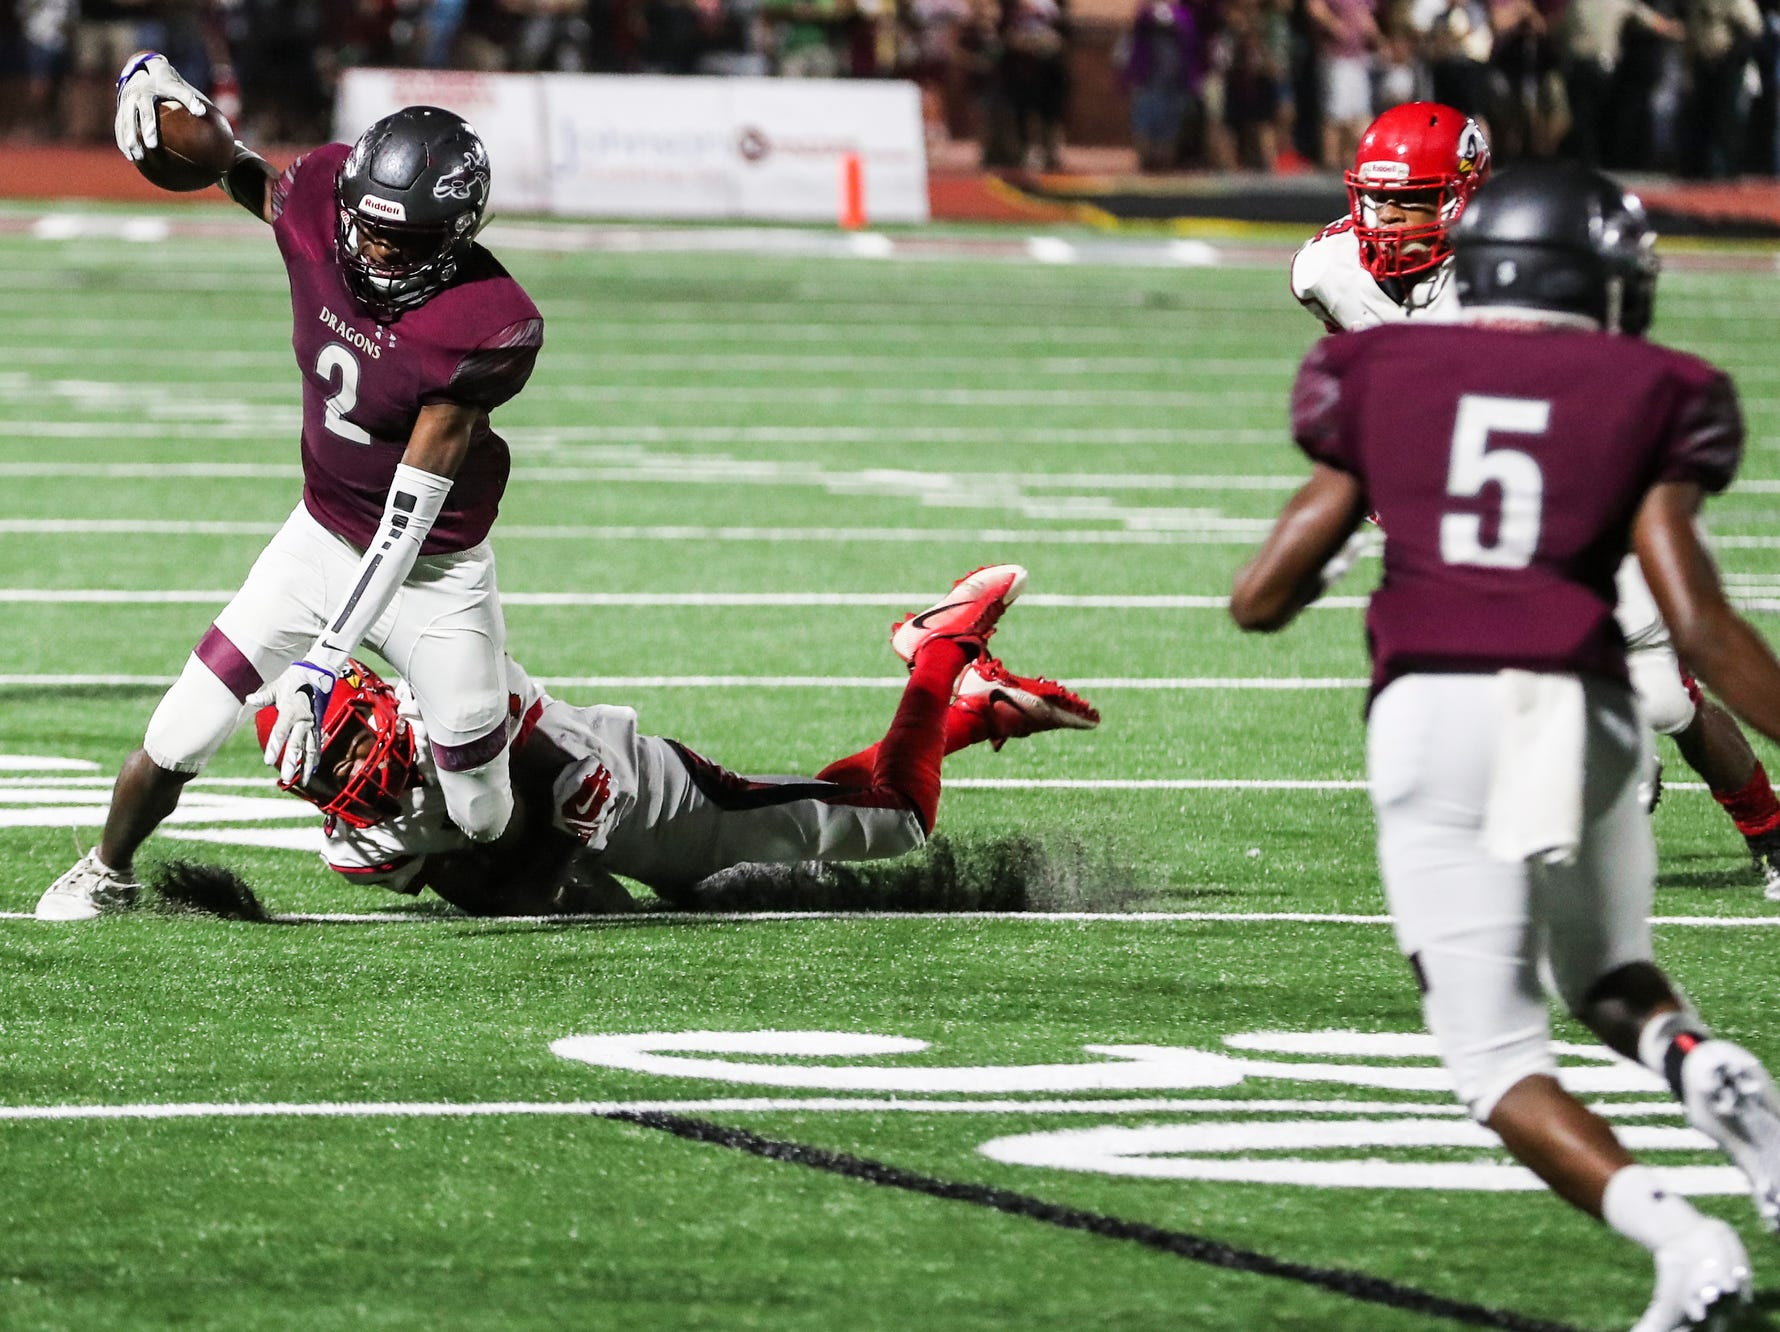 September 21 2018 - Collierville's Jordan Henderson runs with the ball during Friday night's game versus Wooddale at Collierville High School.